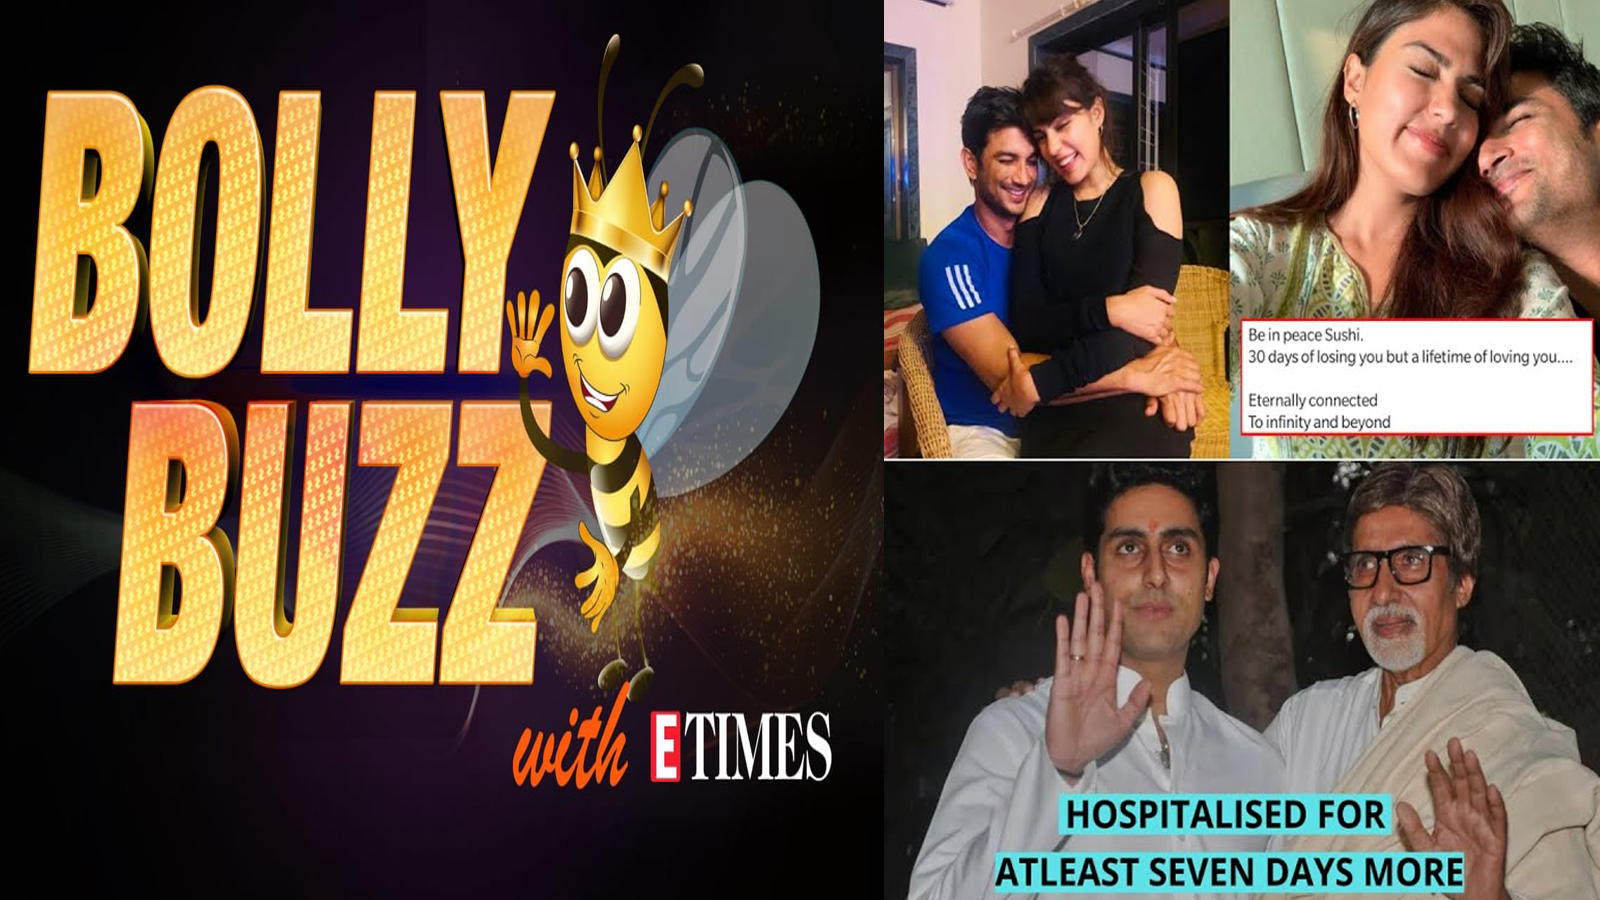 bolly-buzz-rhea-chakraborty-breaks-silence-on-sushant-singh-rajputs-demise-big-bs-health-update